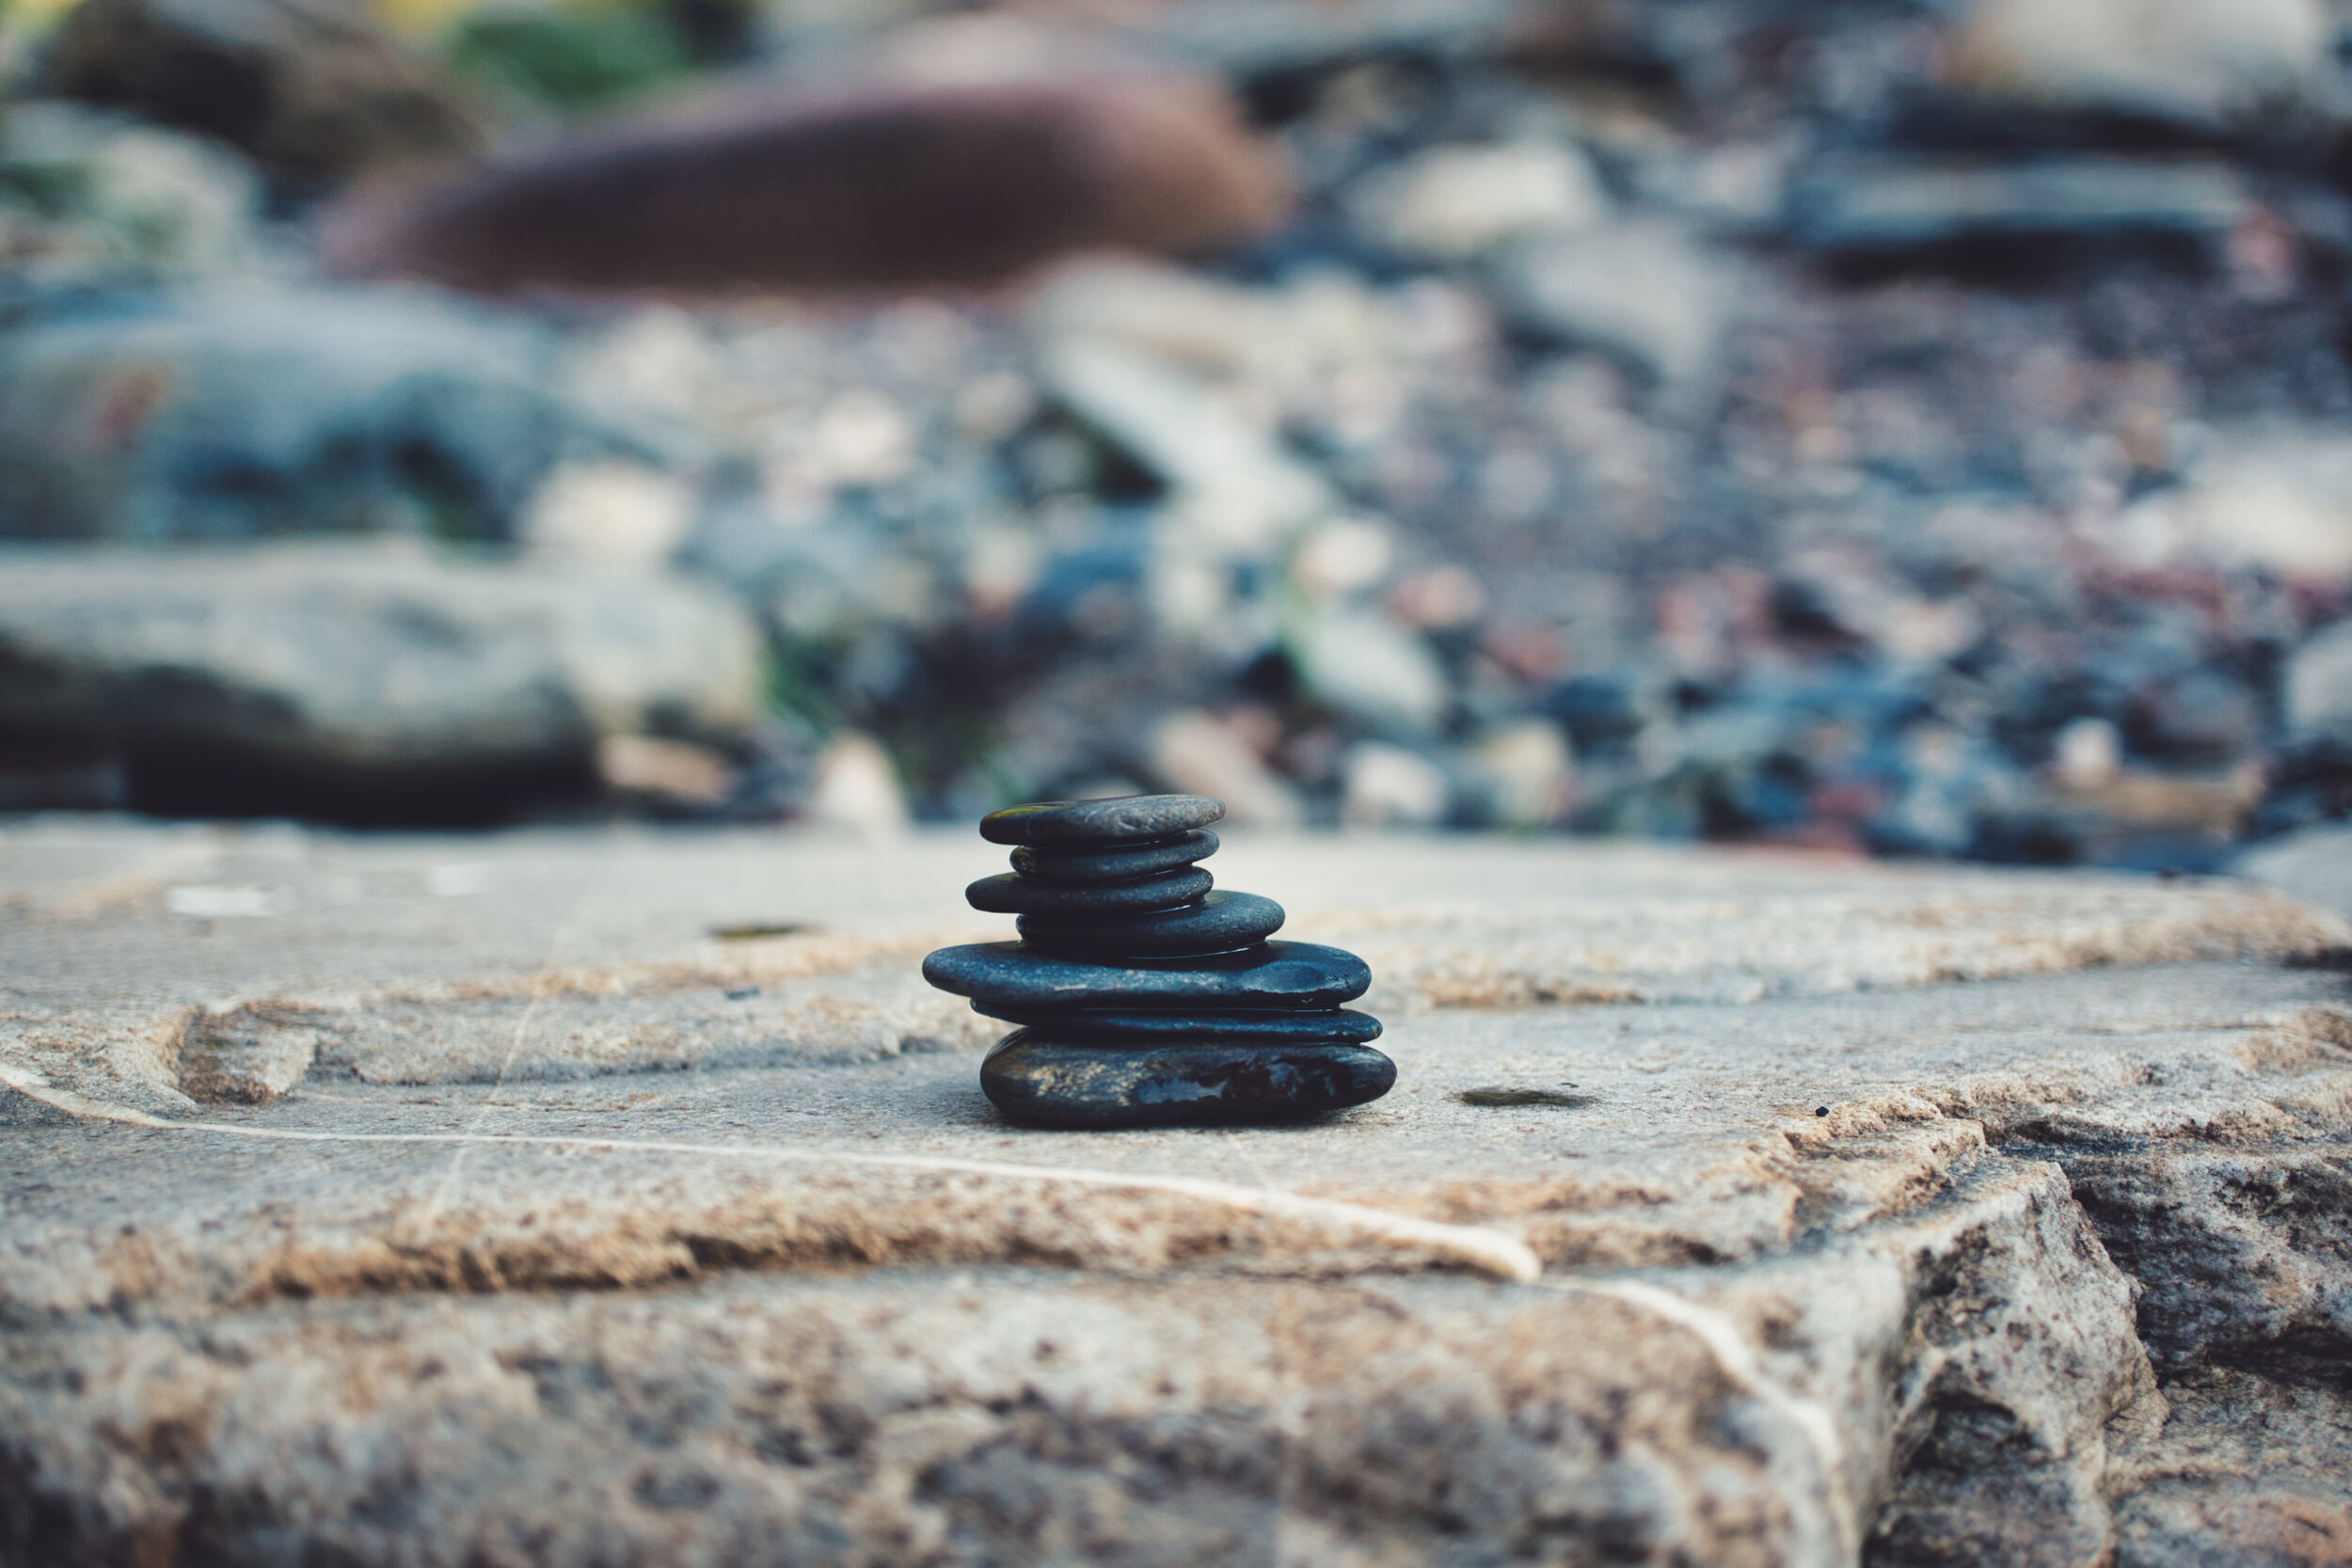 Meditation: foundations of a meditation practice - This workshop is suitable for those starting out on the path of meditation and for those with experience. Some simple basic practice will be explained and explored. This is an opportunity to meditate with others and receive guidance as to how to deepen your individual practice. Led by Richard Bober.